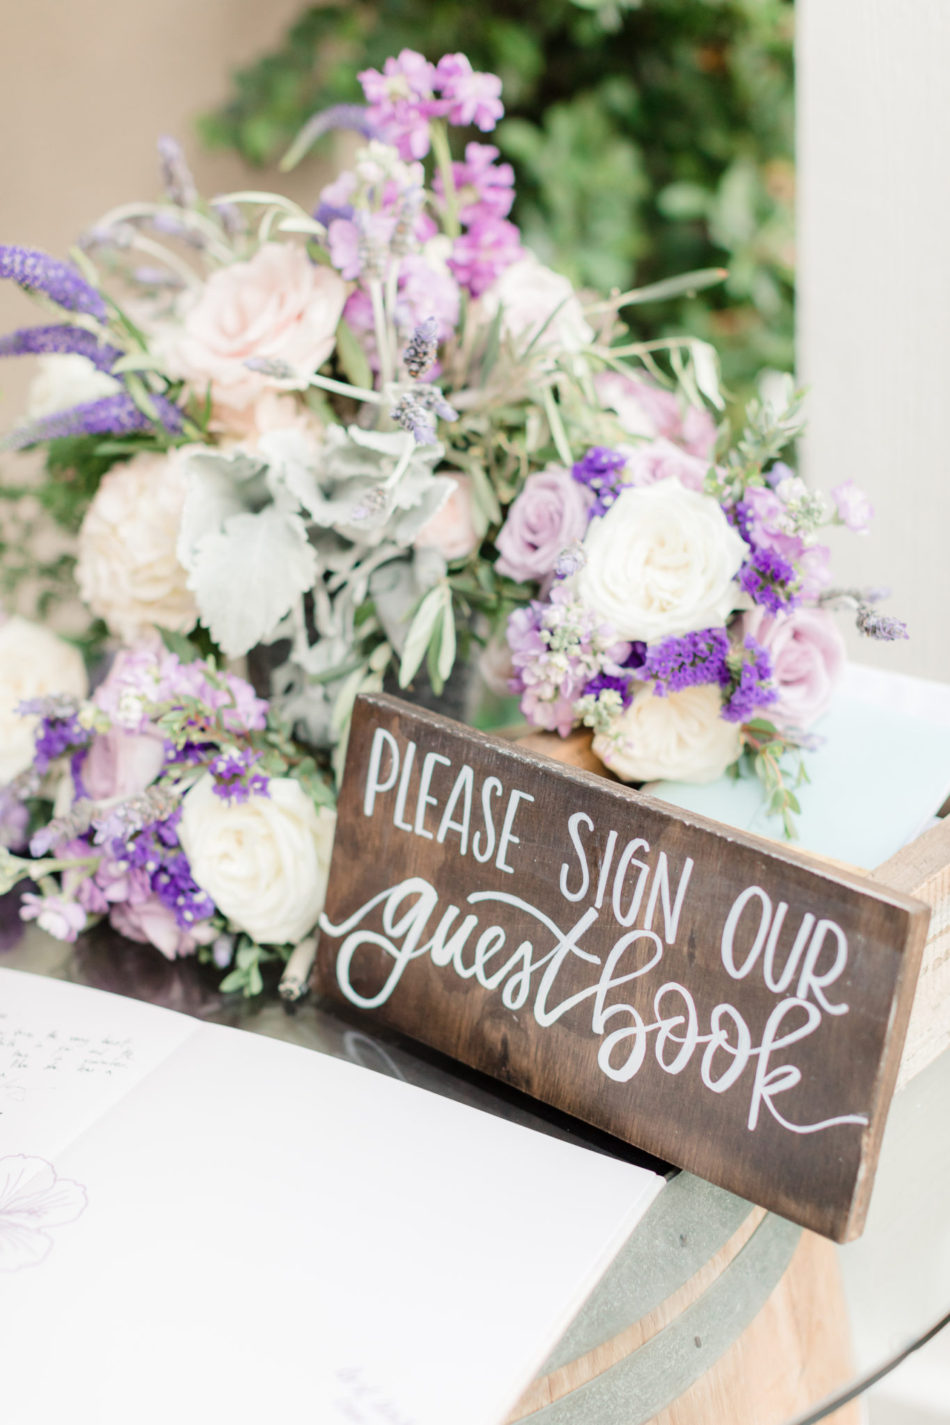 purple wedding decor, purple floral decor, purple blooms, floral design, florist, wedding florist, wedding flowers, orange county weddings, orange county wedding florist, orange county florist, orange county floral design, flowers by cina